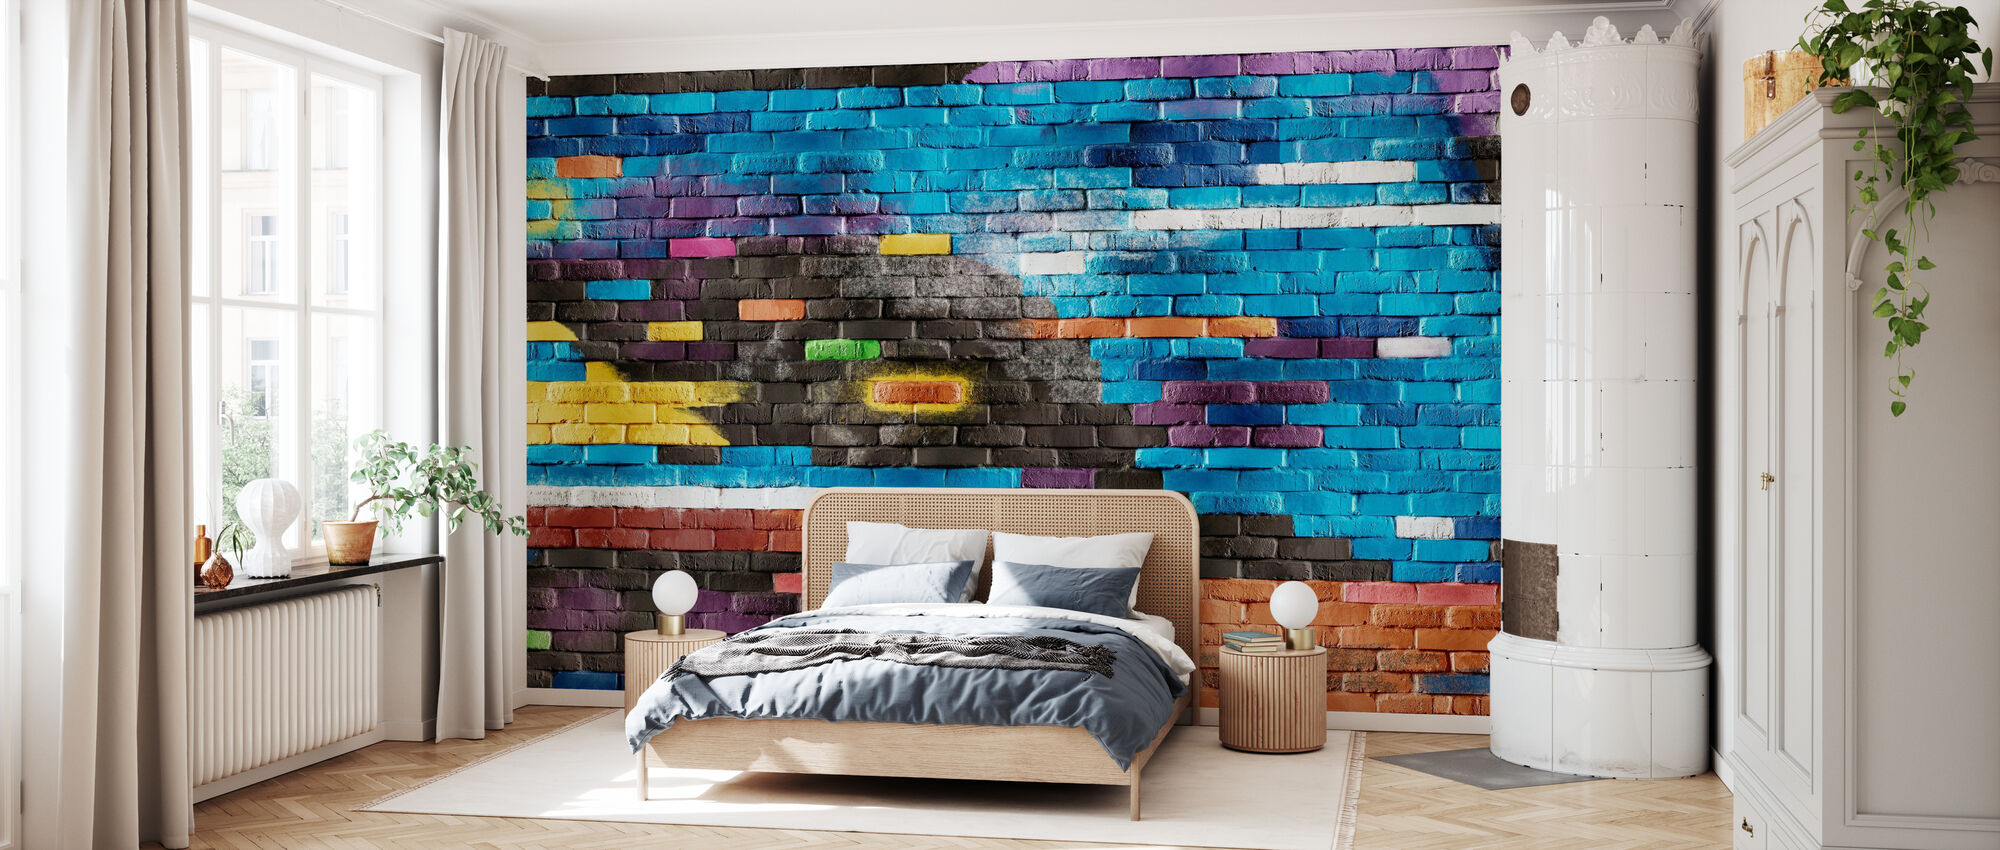 Colorful Brick Wall - Wallpaper - Bedroom